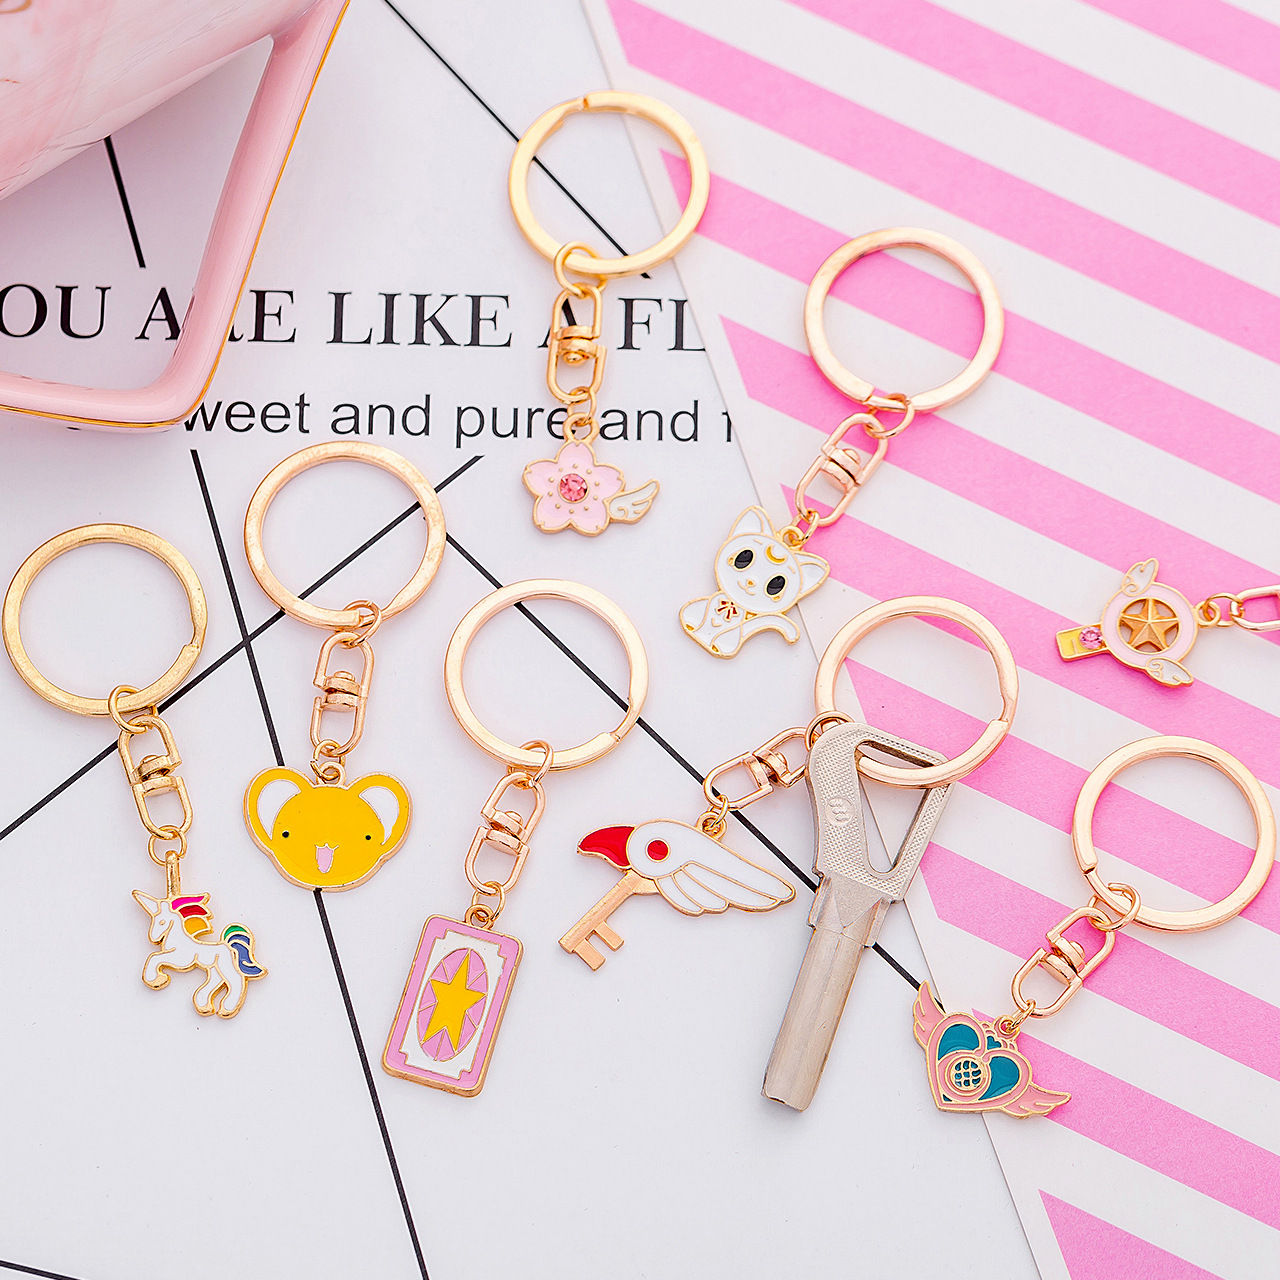 Key buckle other Wings Love Pink Unicorn wings Cherry Blossom white unicorn black kitten white kitten star magic wand pink card Pink Flamingo wings star bird key Huang Xiaoke Metal